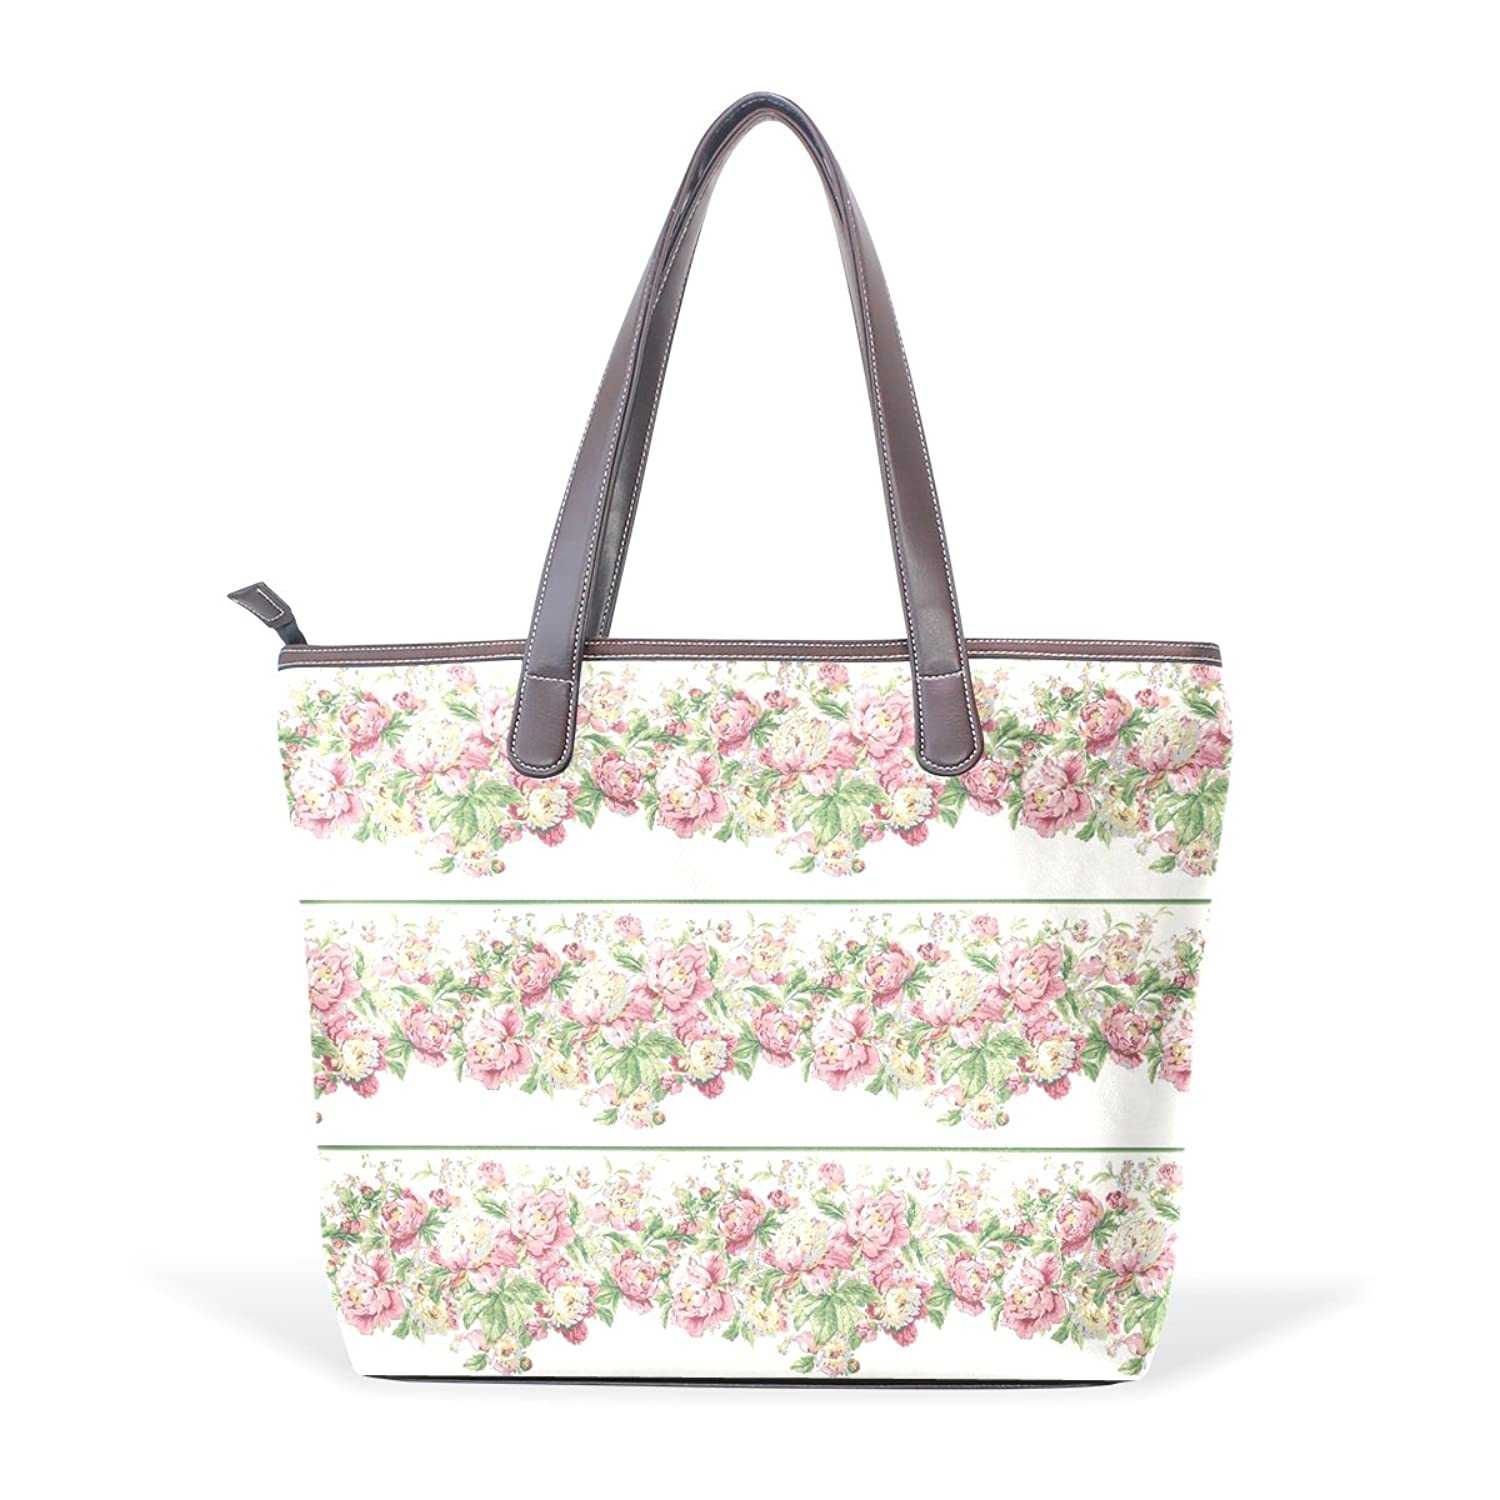 Womens Leather Tote Bag,Shabby Chic Court Vintage Pink Floral,Large Handbag